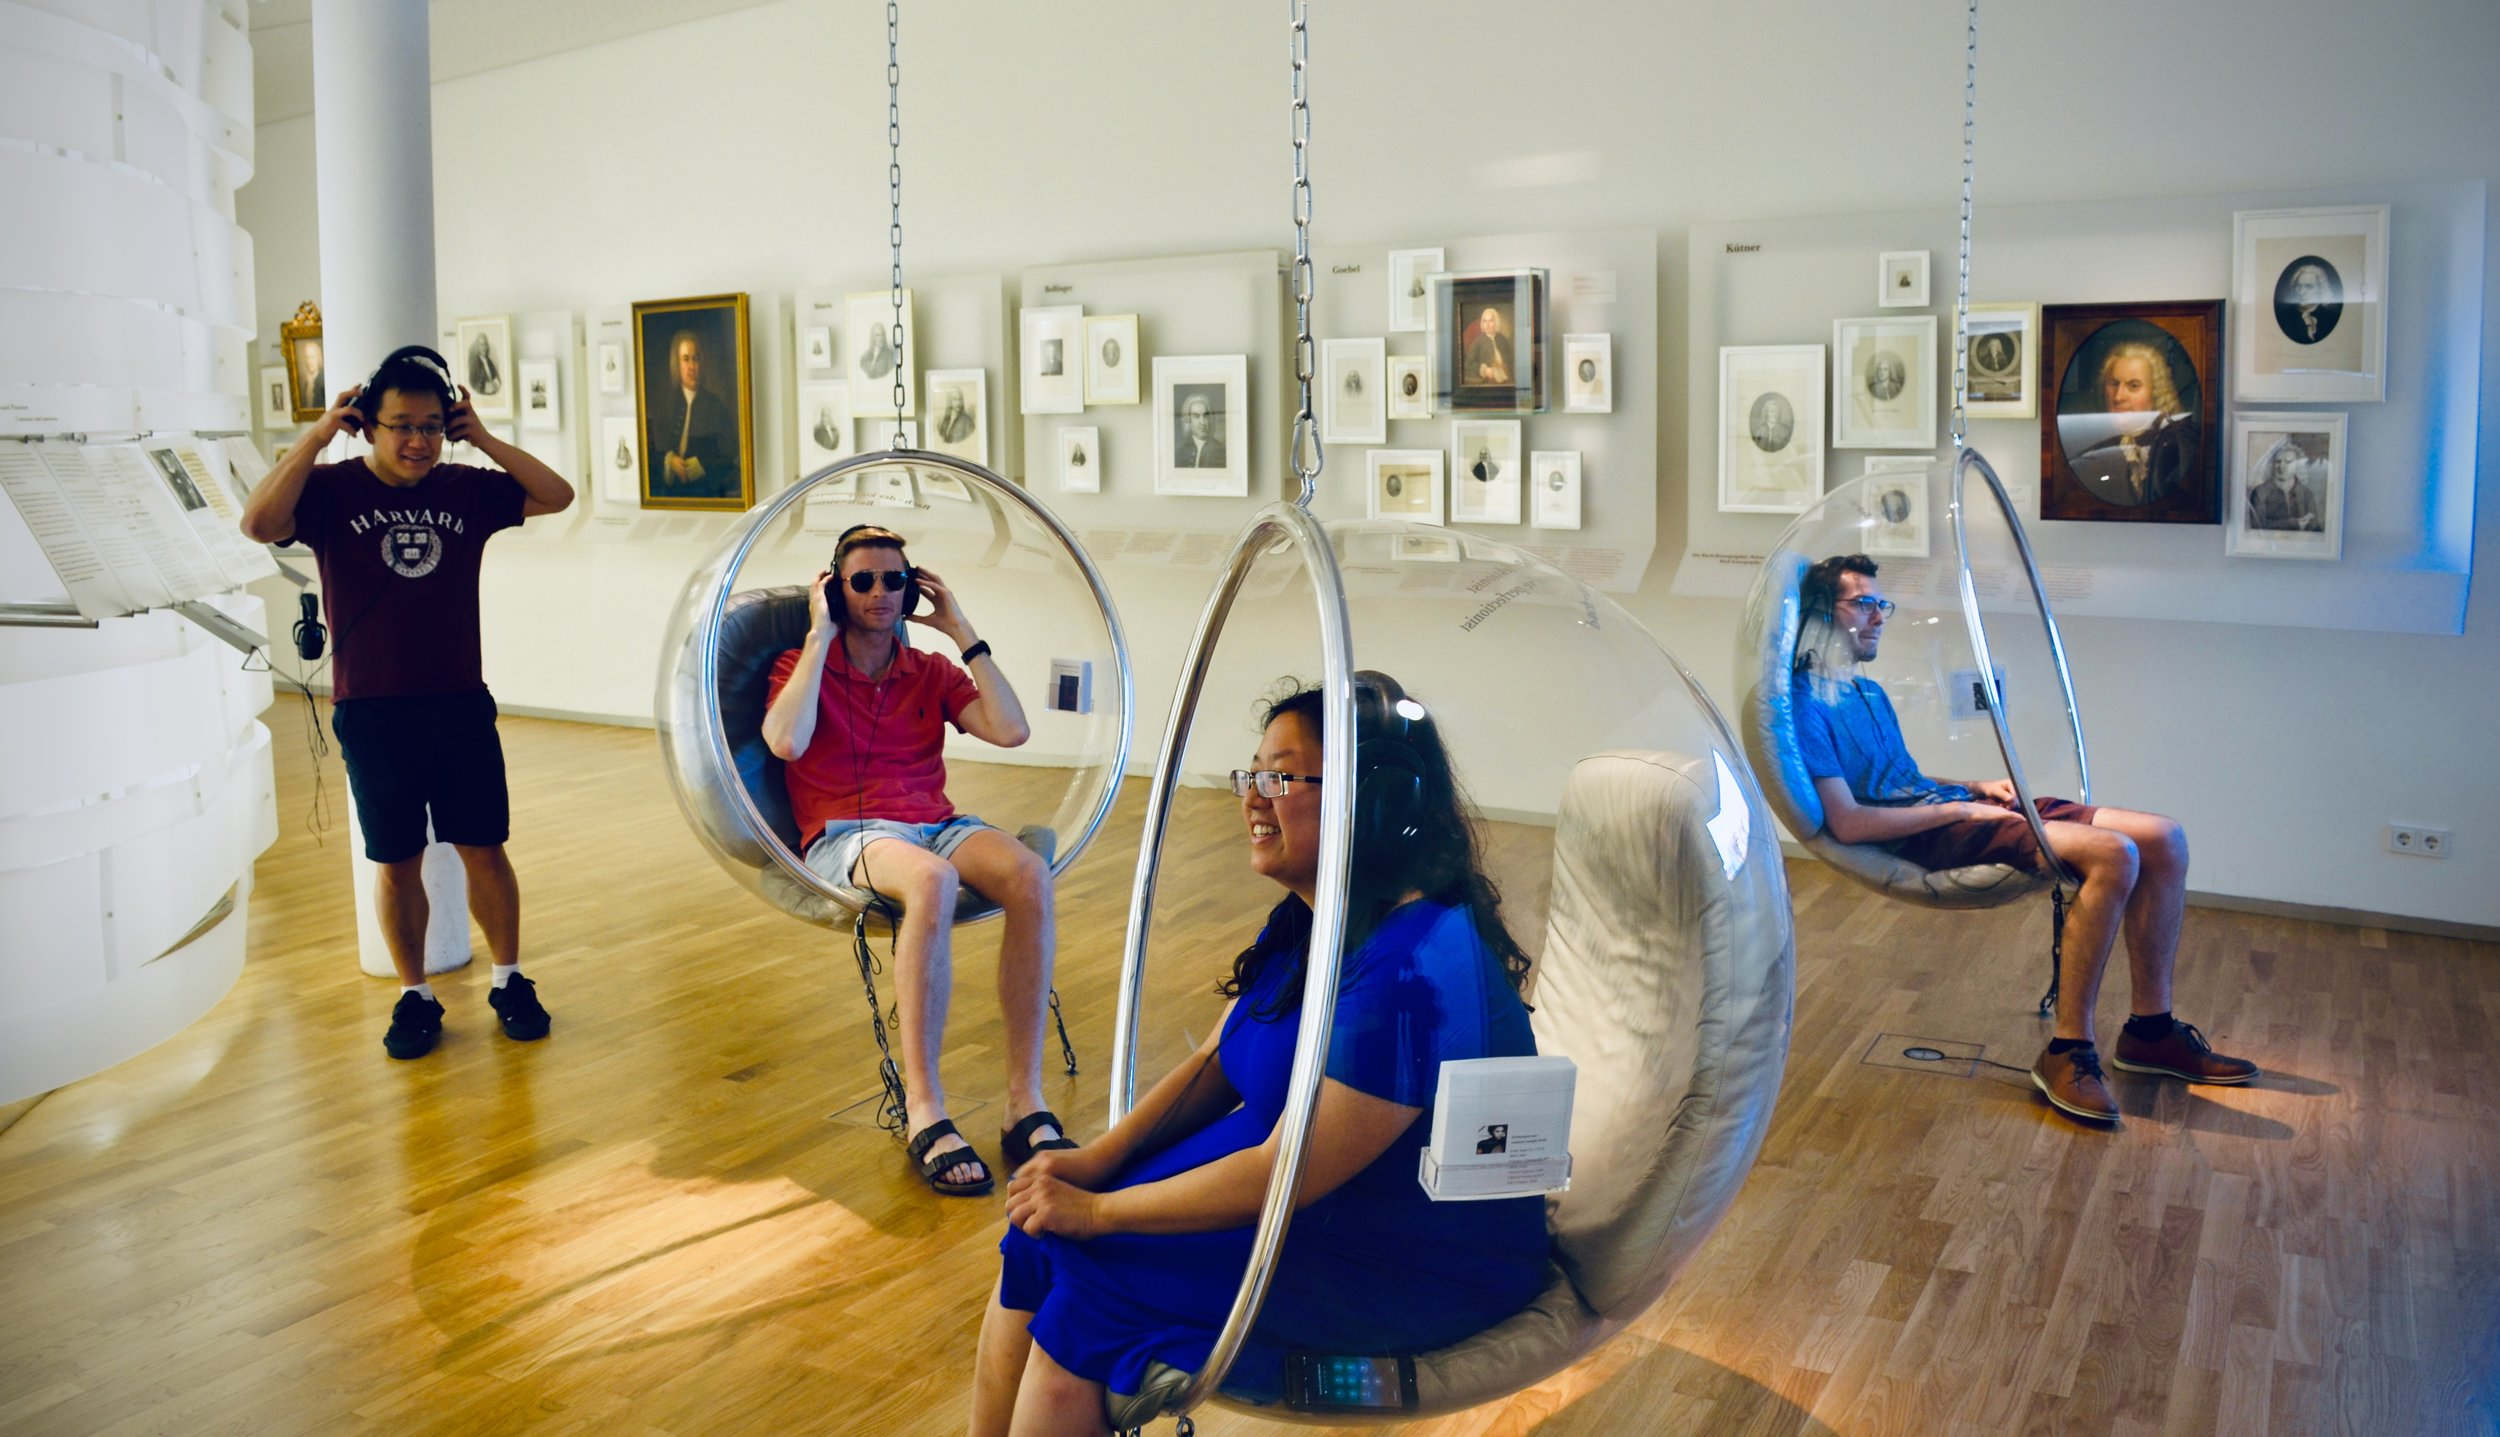 Adrian Cho, Evan Currie, Jennifer Hsiao, and Nick Capozzoli listen to music at the Bachhaus Museum, Eisenach.